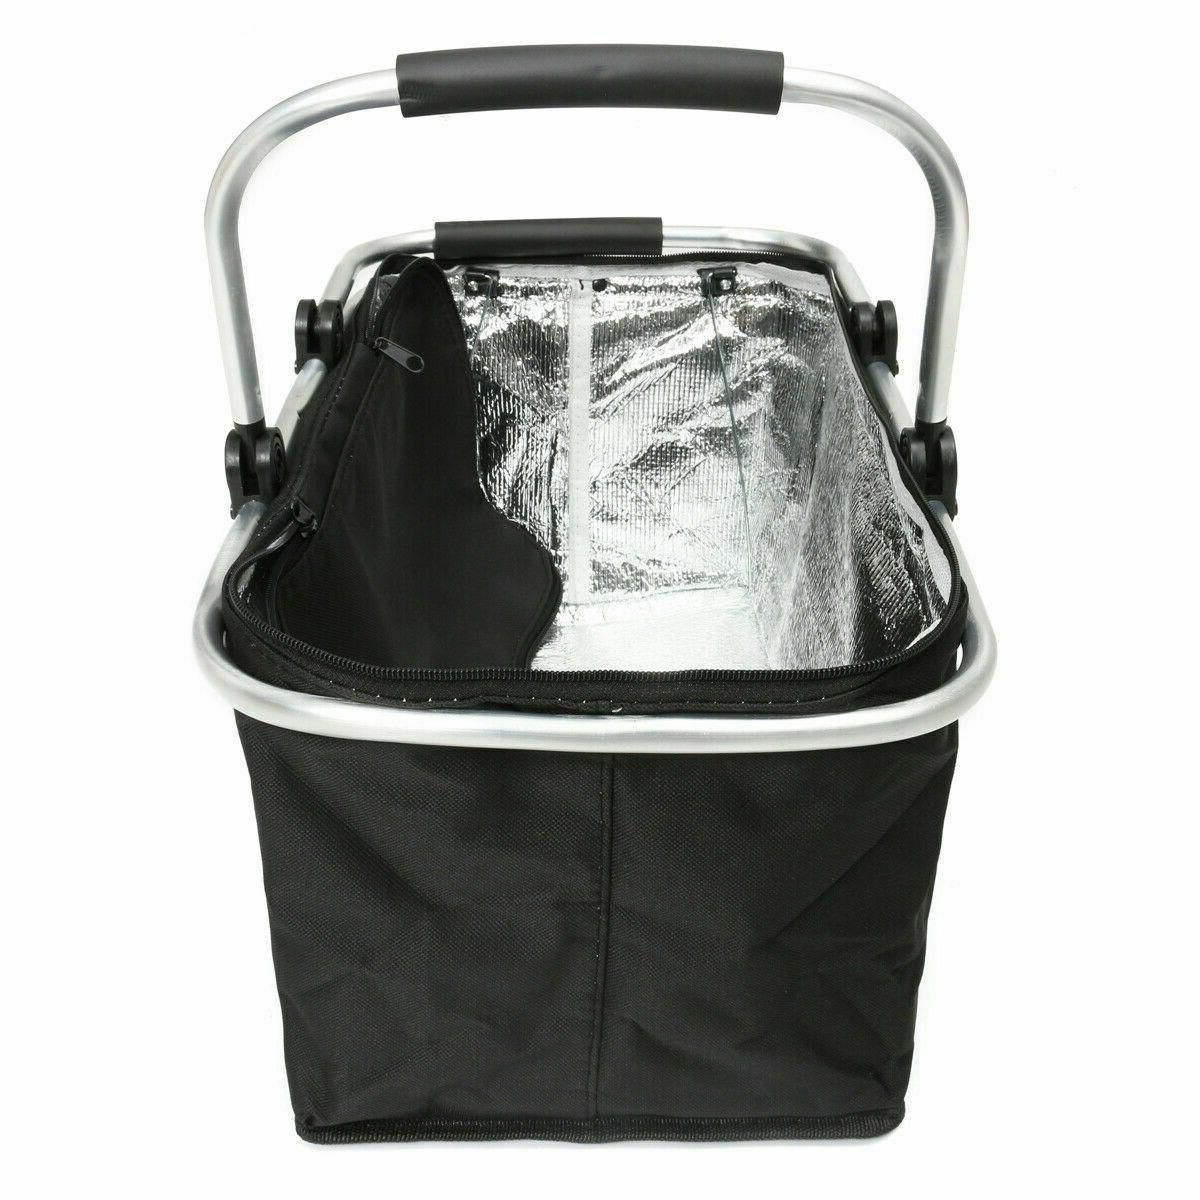 30L Insulated Large Folding Cooler Waterproof